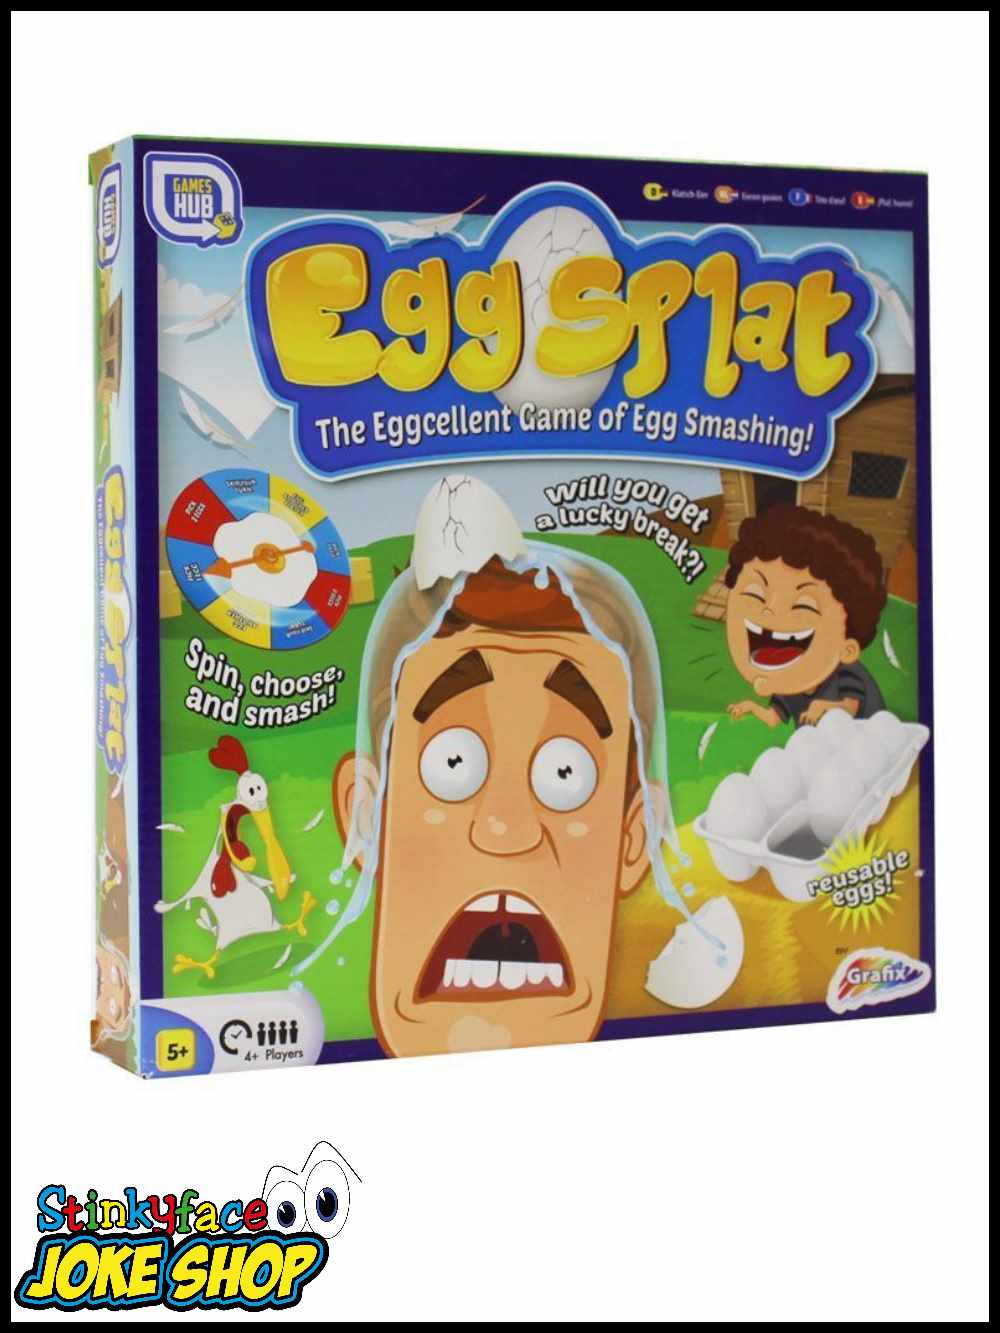 Splat Game Pie Face Fun Games Board Inspired Family Drinking ...